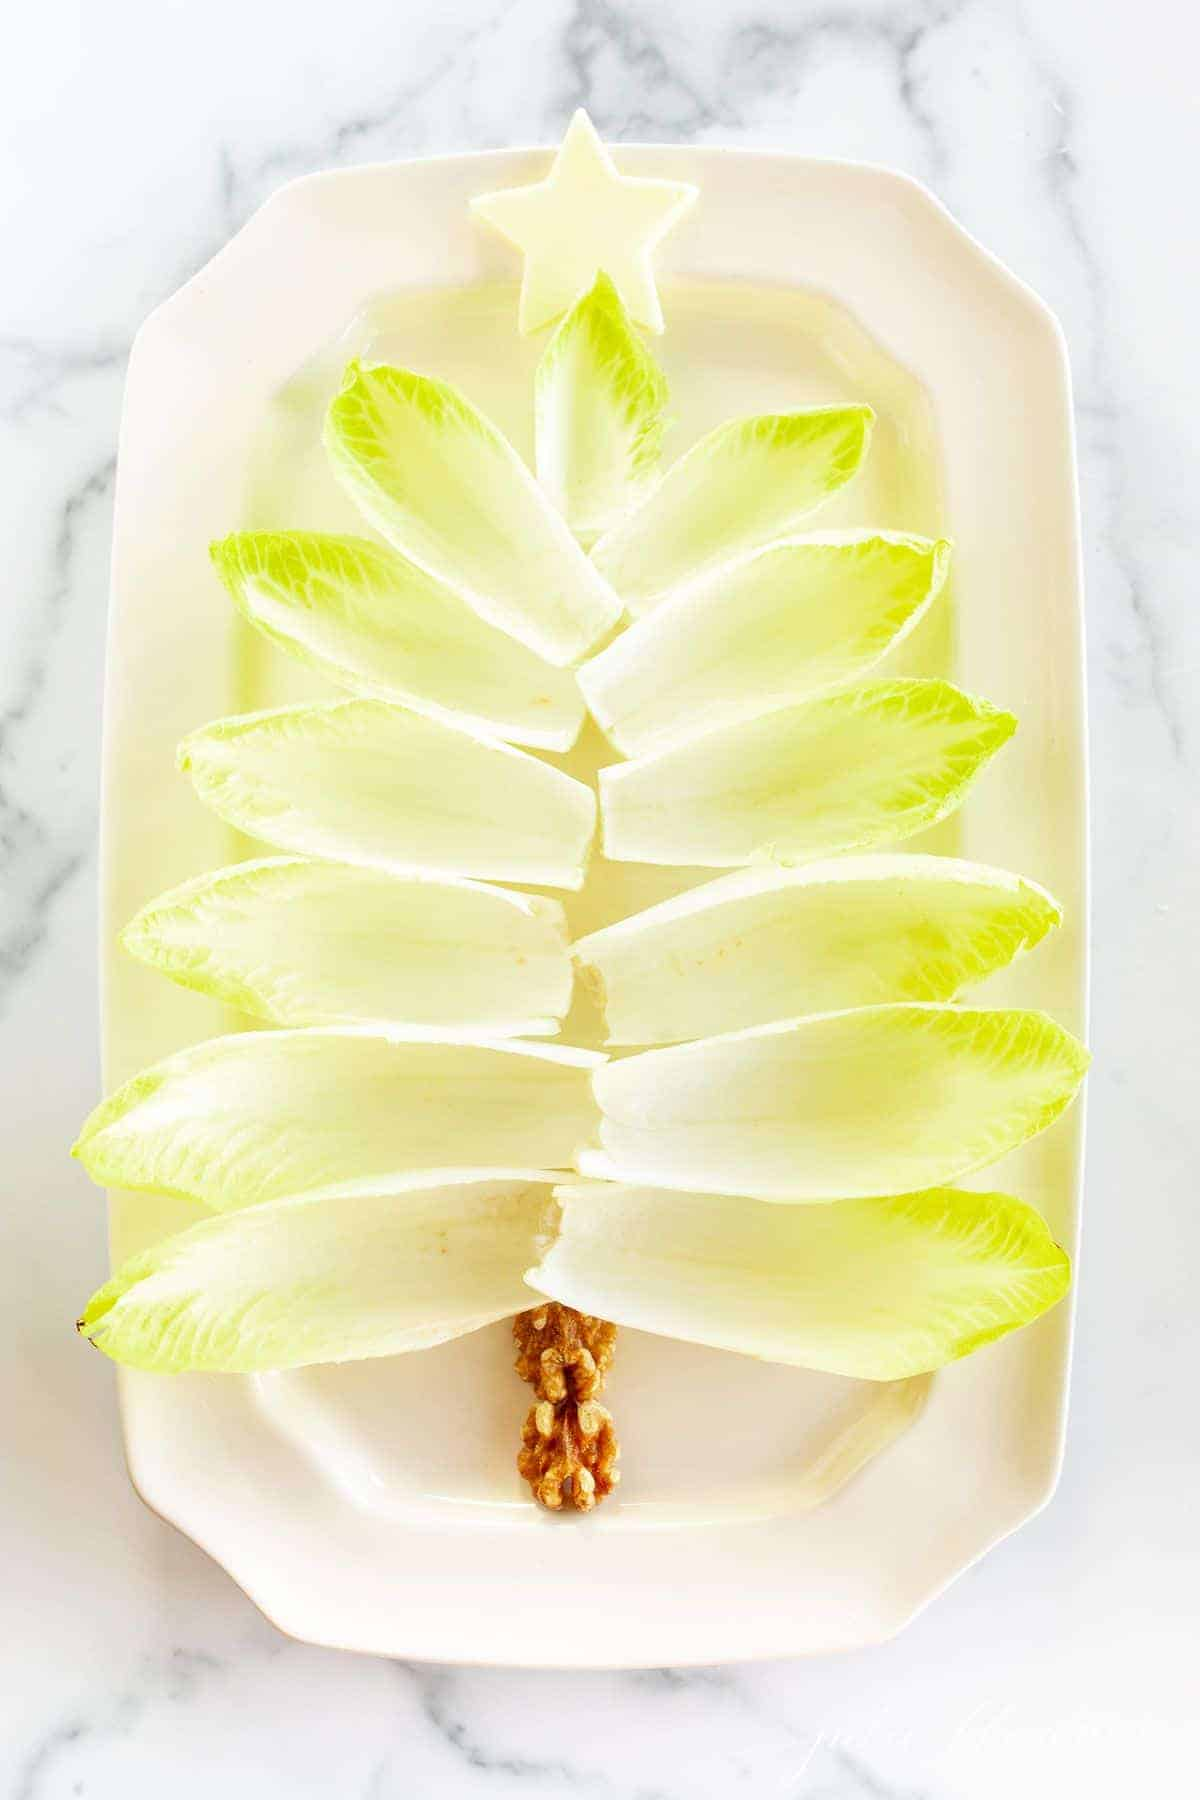 Endive lettuce leaves on a white platter formed into a Christmas tree for a holiday hors d'oeuvre.